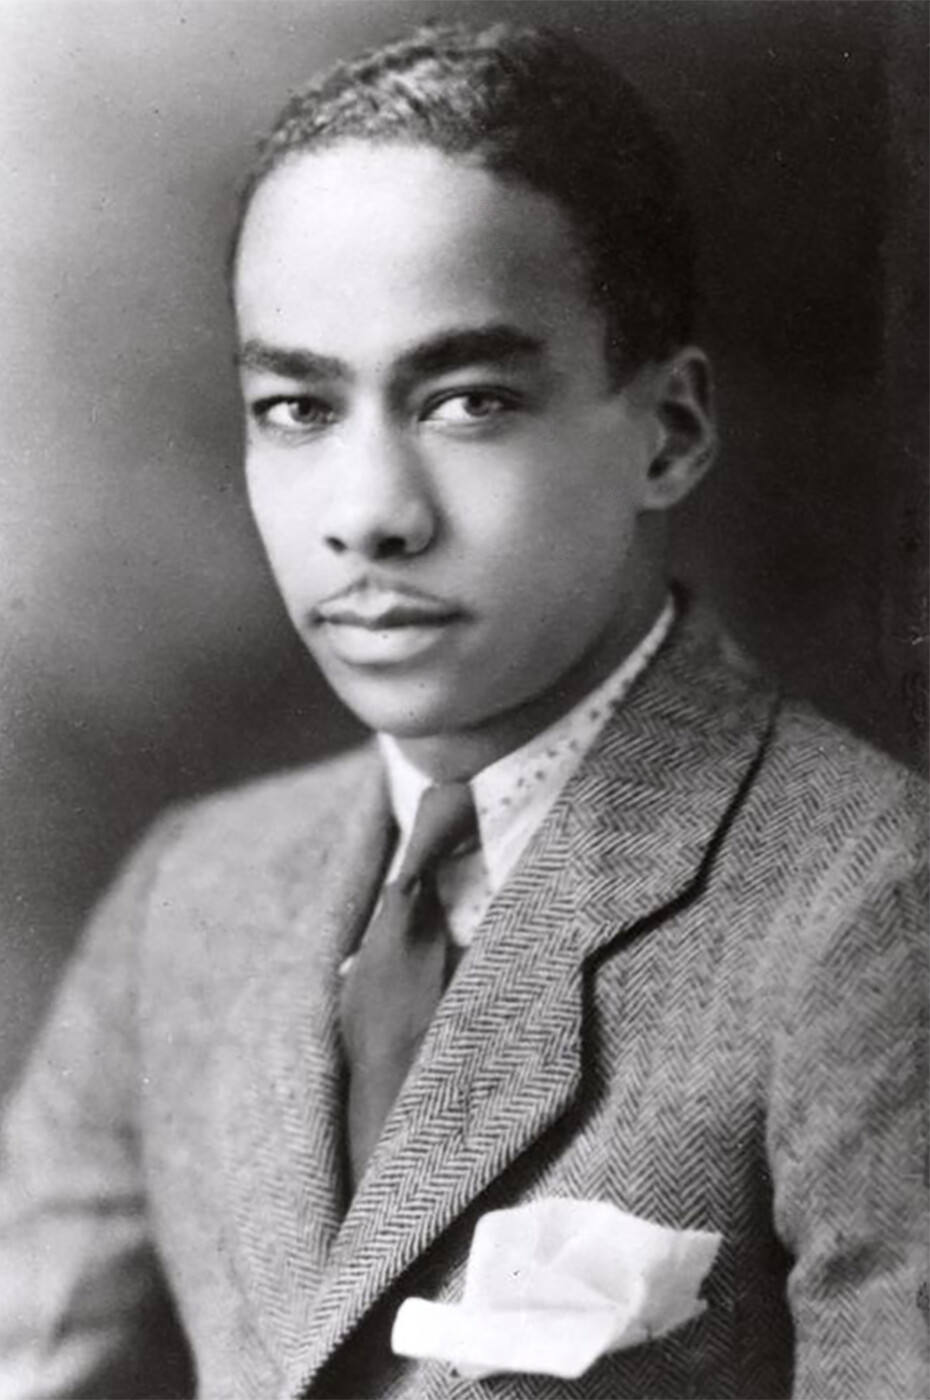 Clayton at graduation from high school, c. 1930. All photos credited to University of Missouri – Kansas City, La Budde Special Collections.